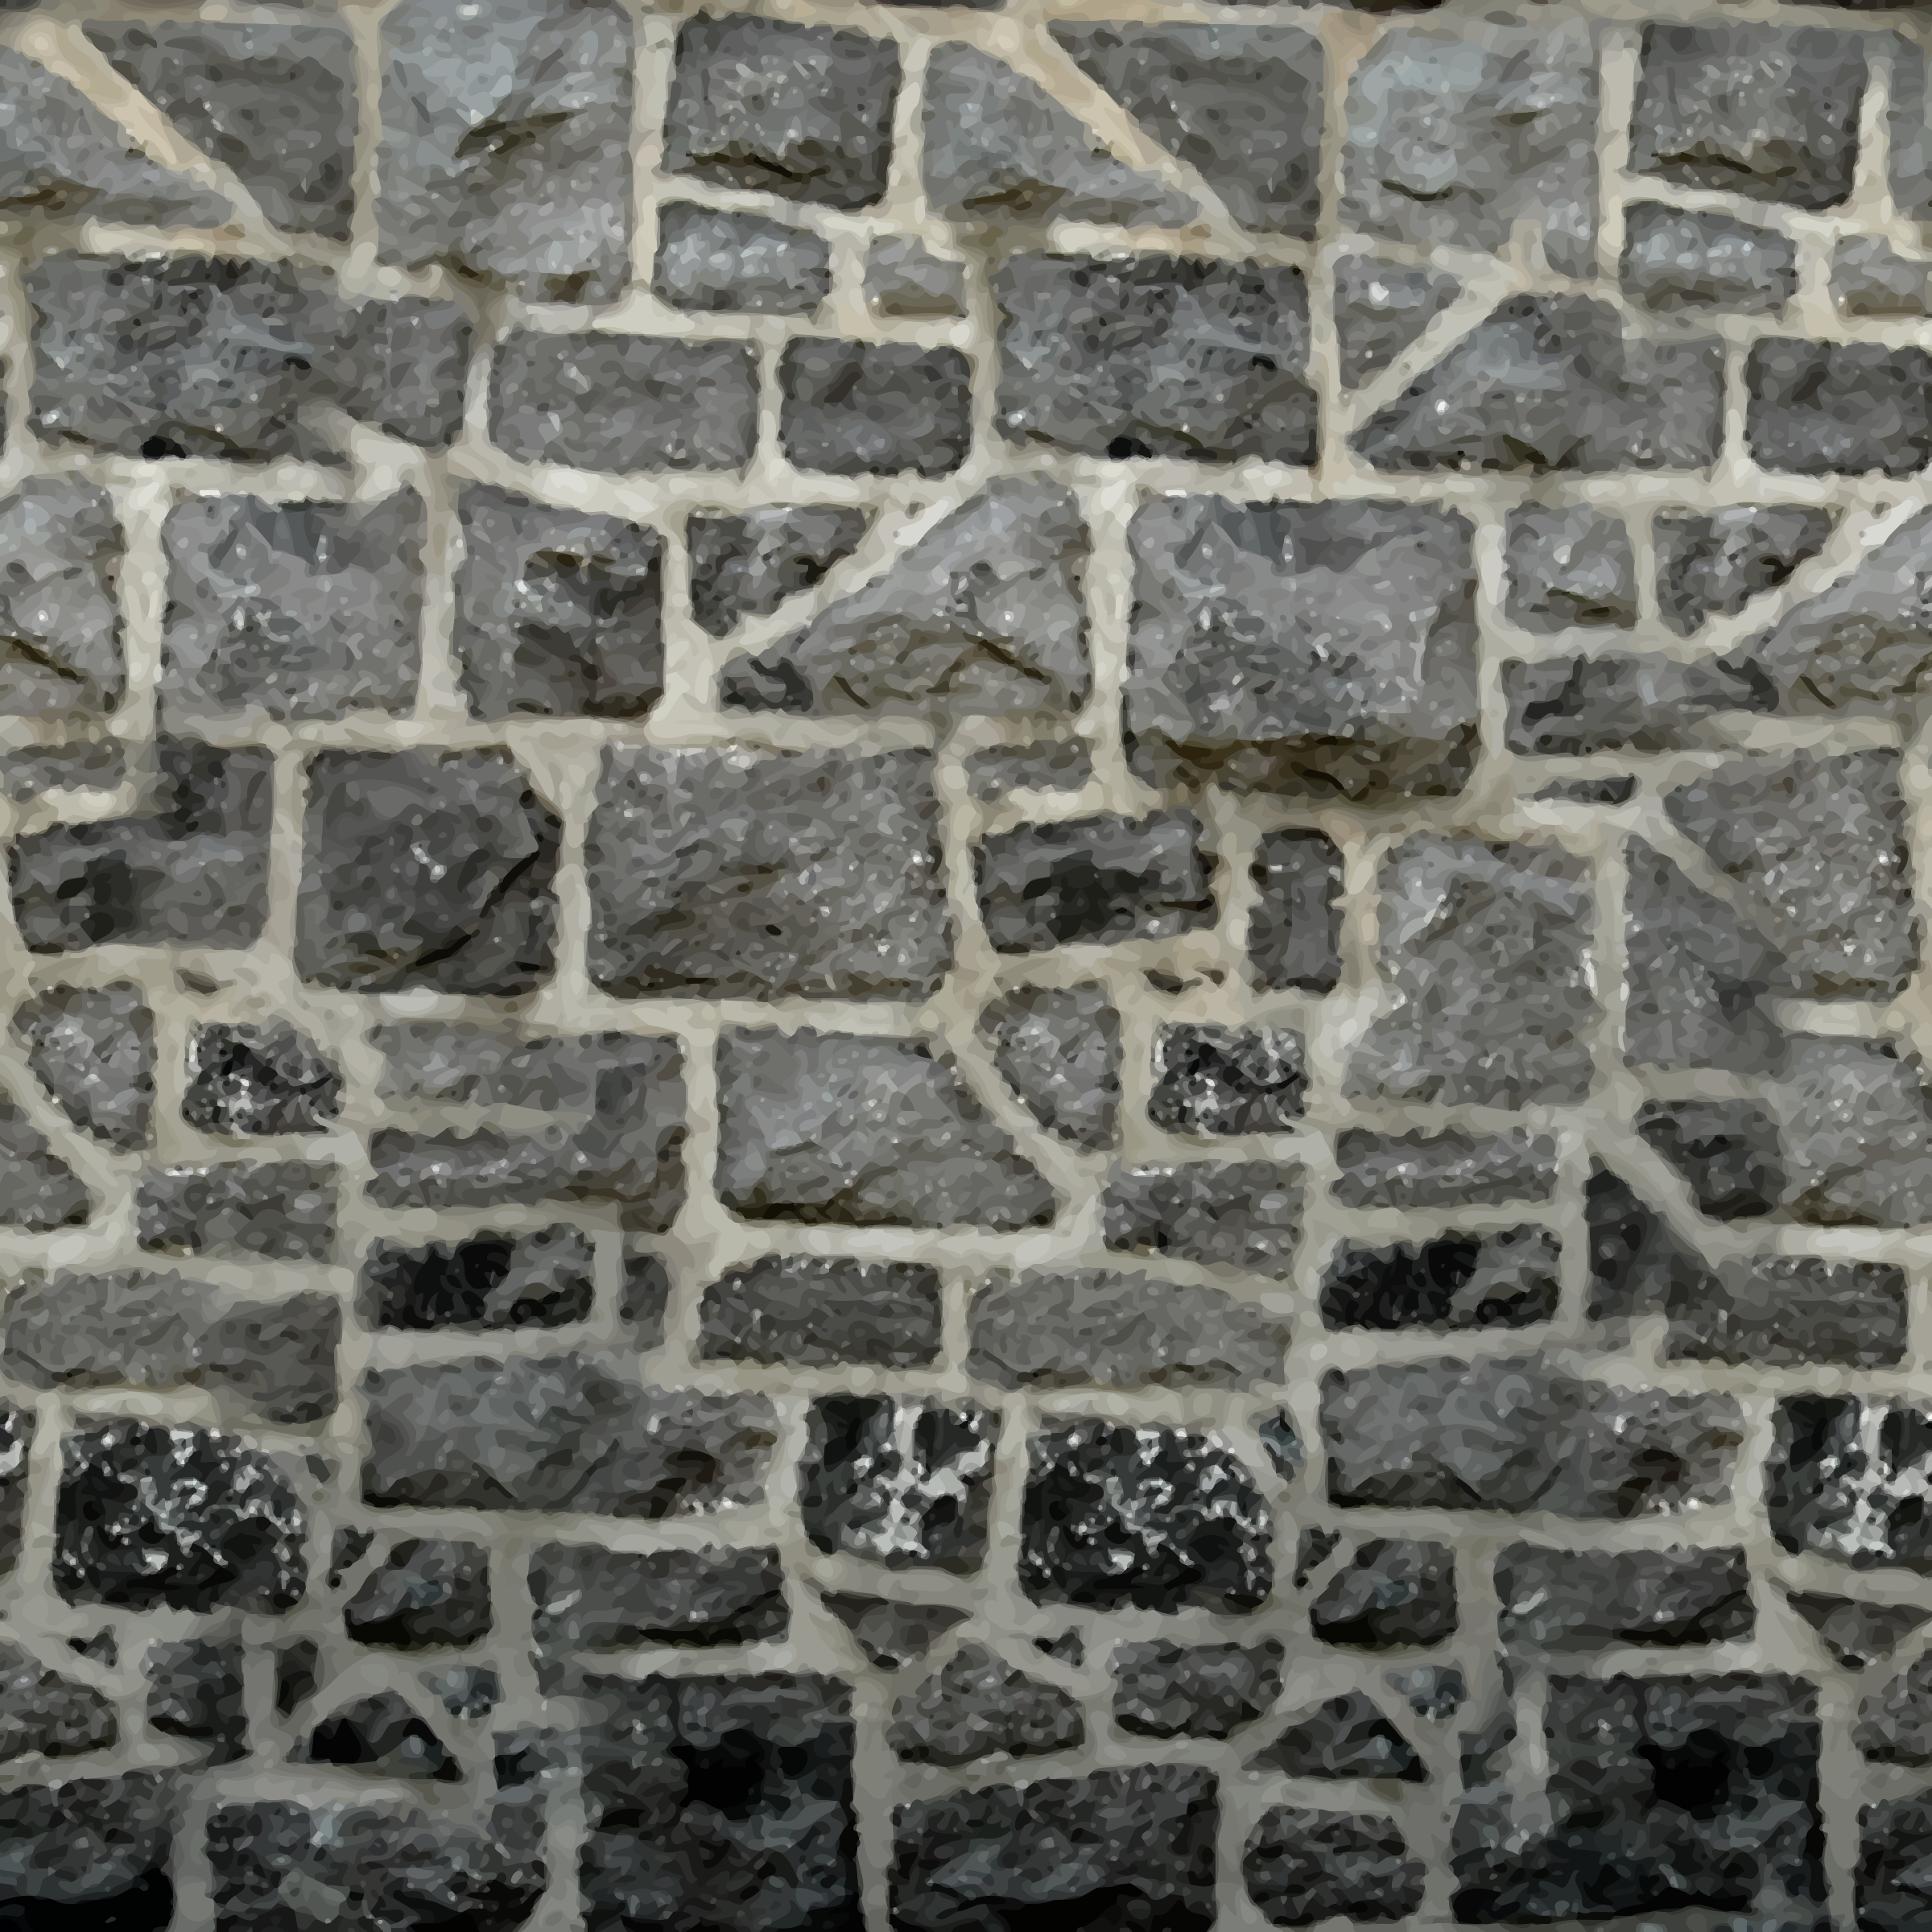 Stone wall 9 by Firkin